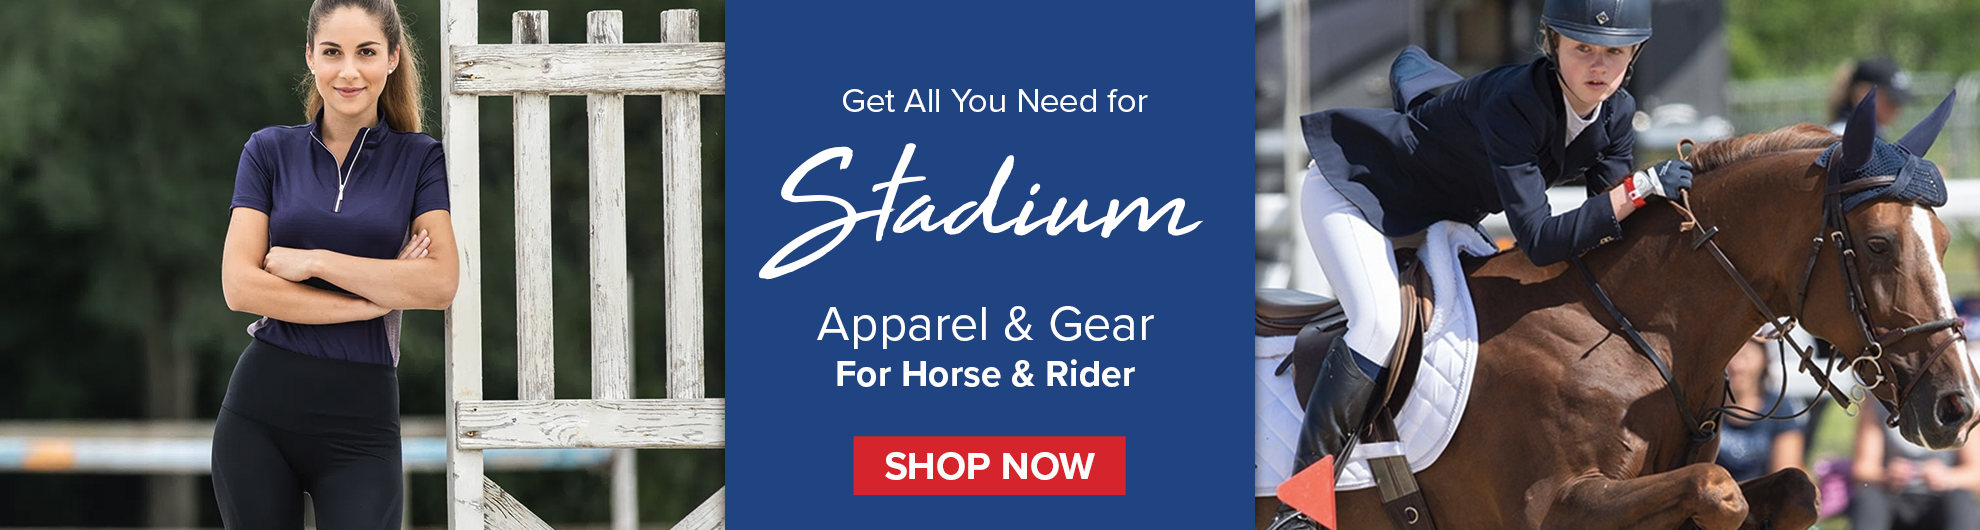 Apparel and Gear for Stadium Jumping